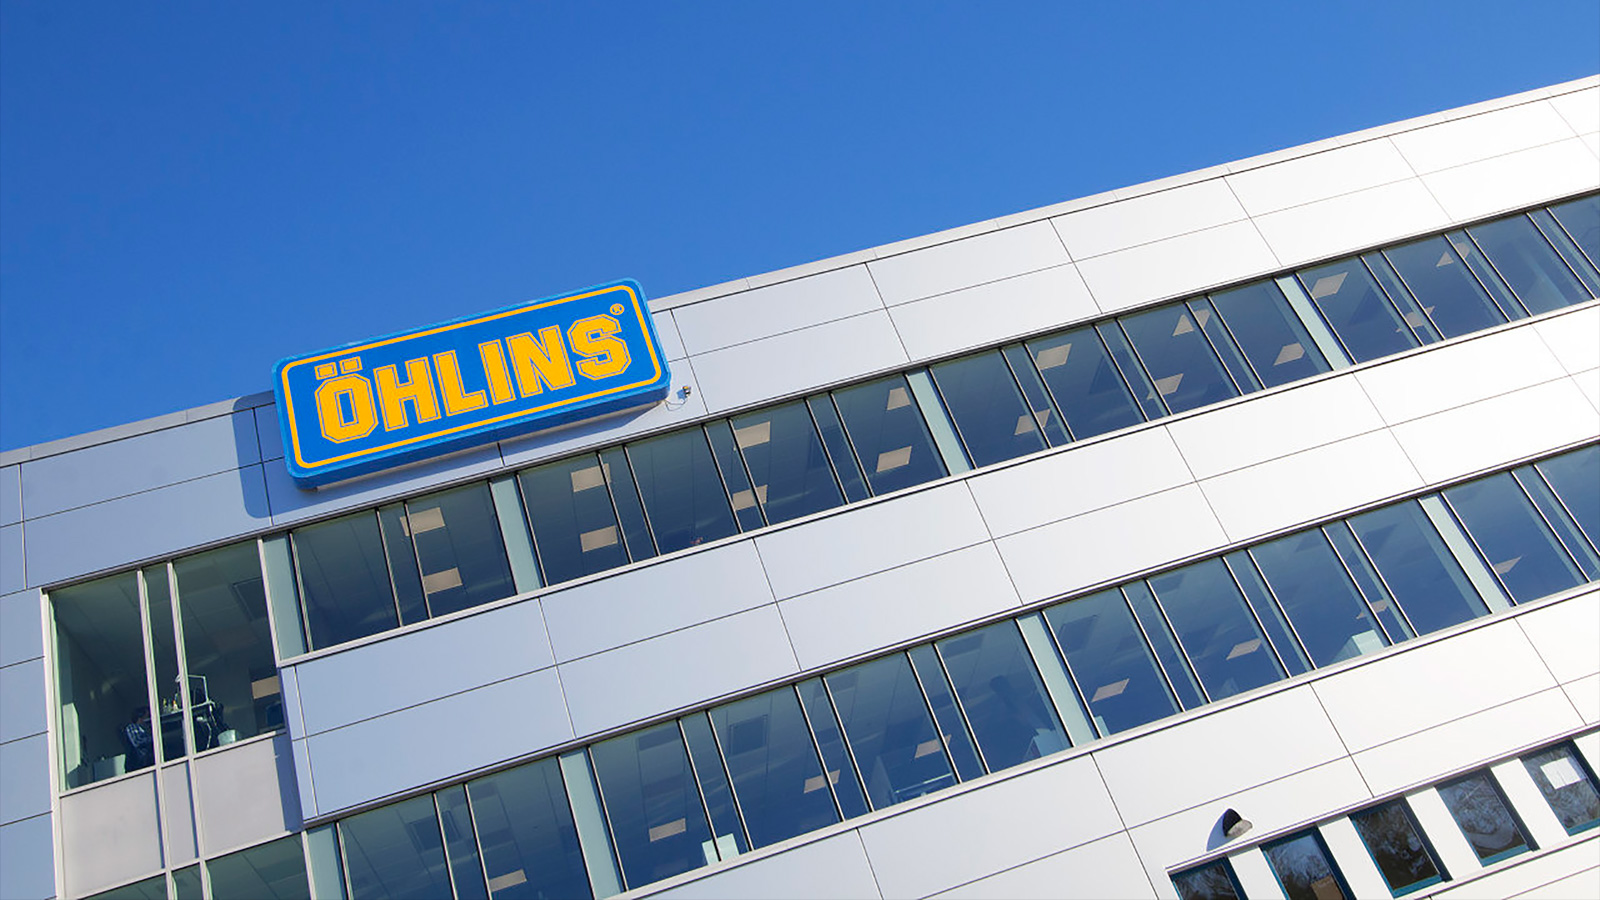 Öhlins is already a familiar name in Touring Car paddocks around the globe.